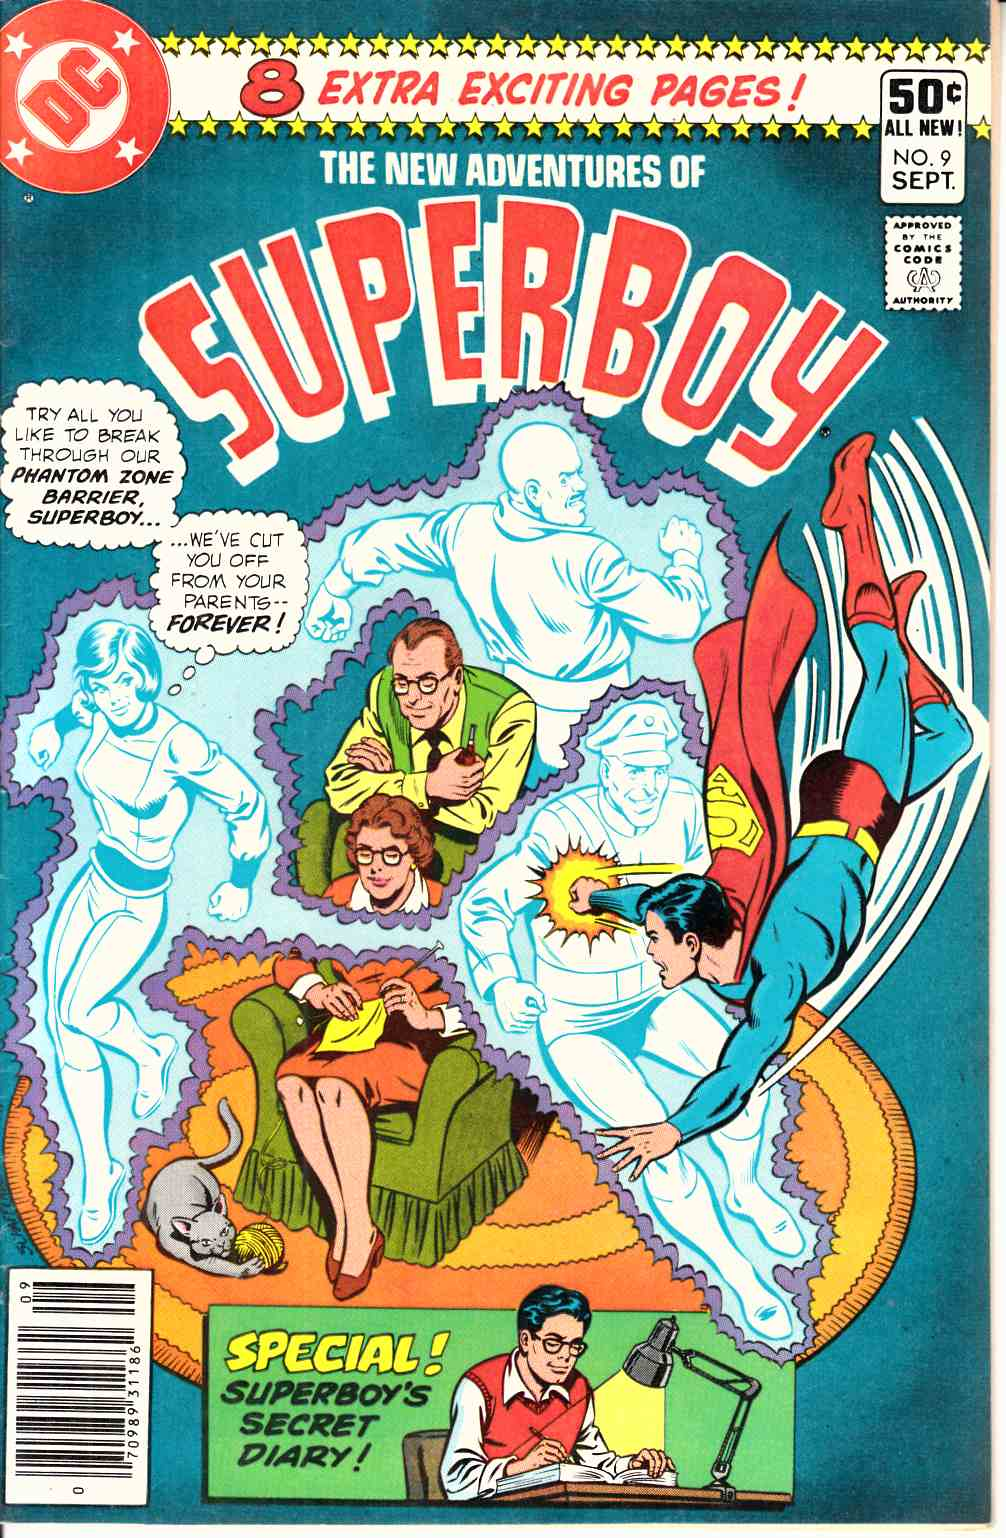 New Adventures of Superboy #9 Near Mint Minus (9.2) [DC Comic] THUMBNAIL